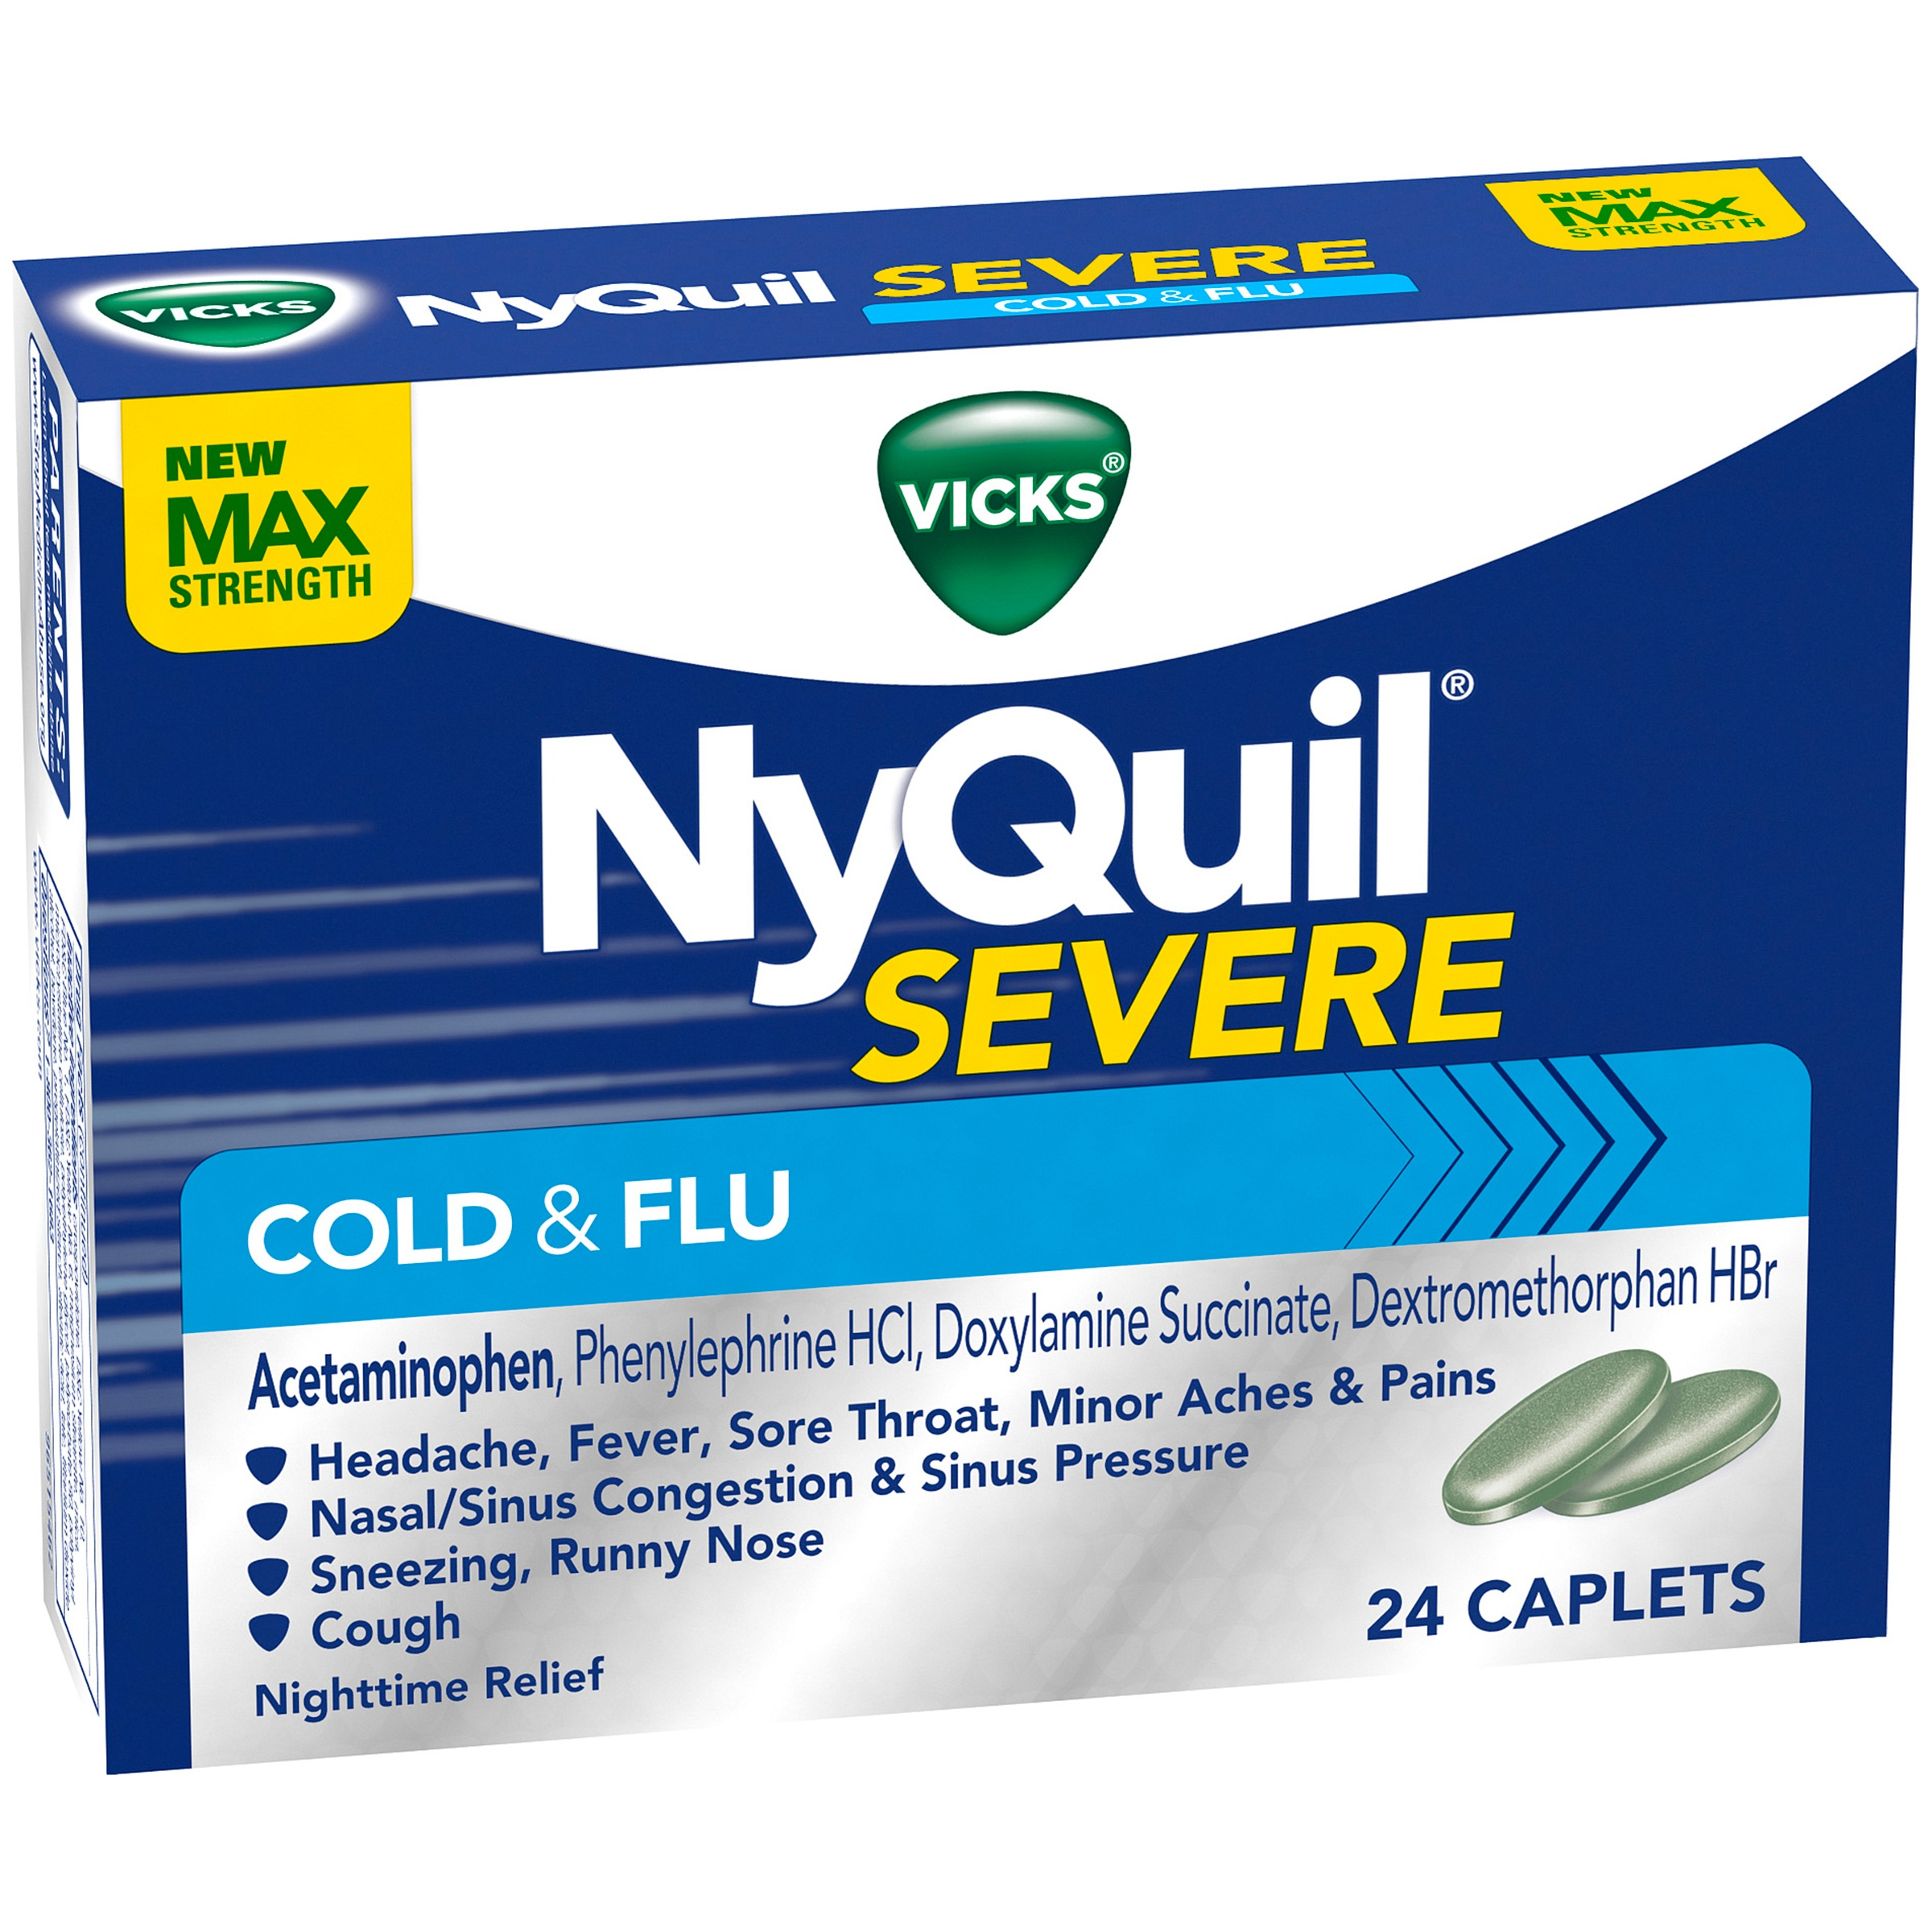 Vicks NyQuil Severe Cold & Flu Nighttime Relief Caplets 24 ct Box